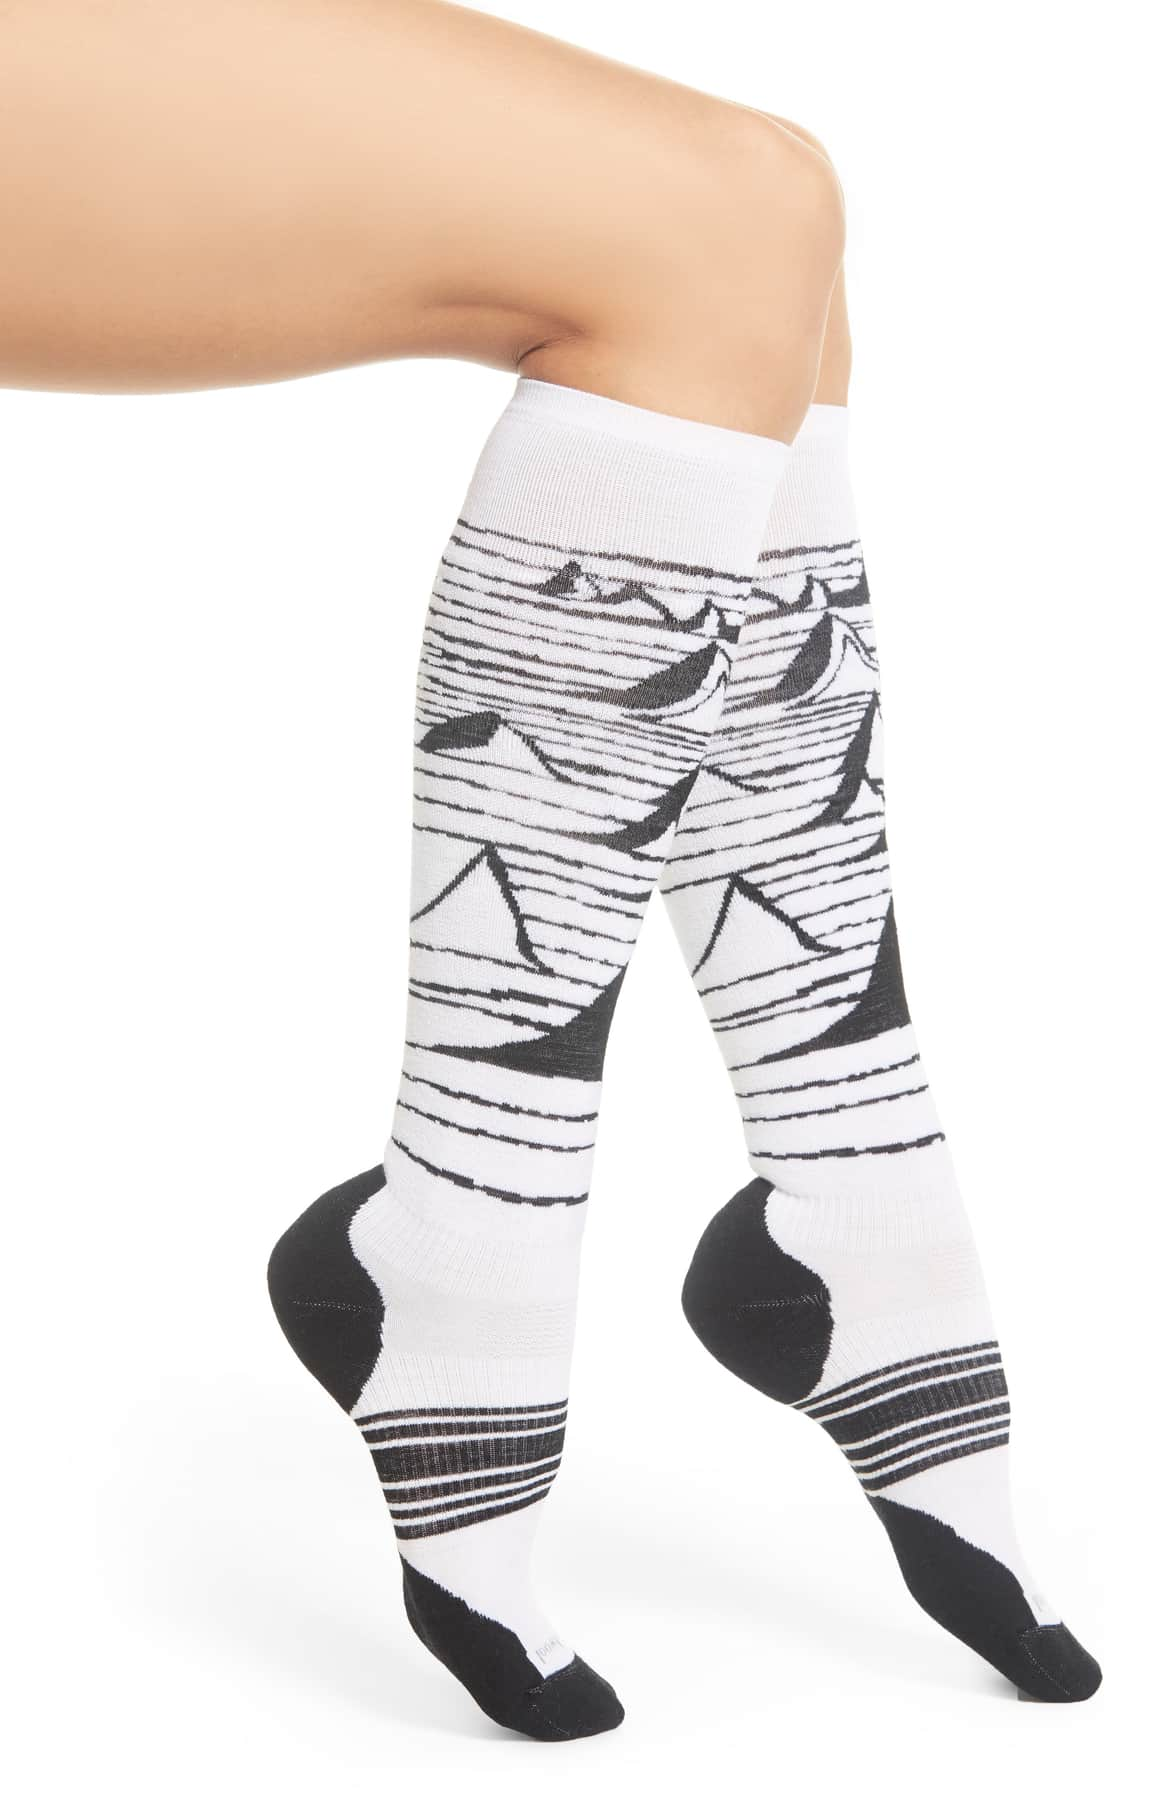 Keep your toes warm in these merino socks featuring light targeted cushioning, body-mapped mesh zones, a 4 Degree elite fit system and some bright mountain vistas.{ } $24.95 (Image: Nordstrom){ }